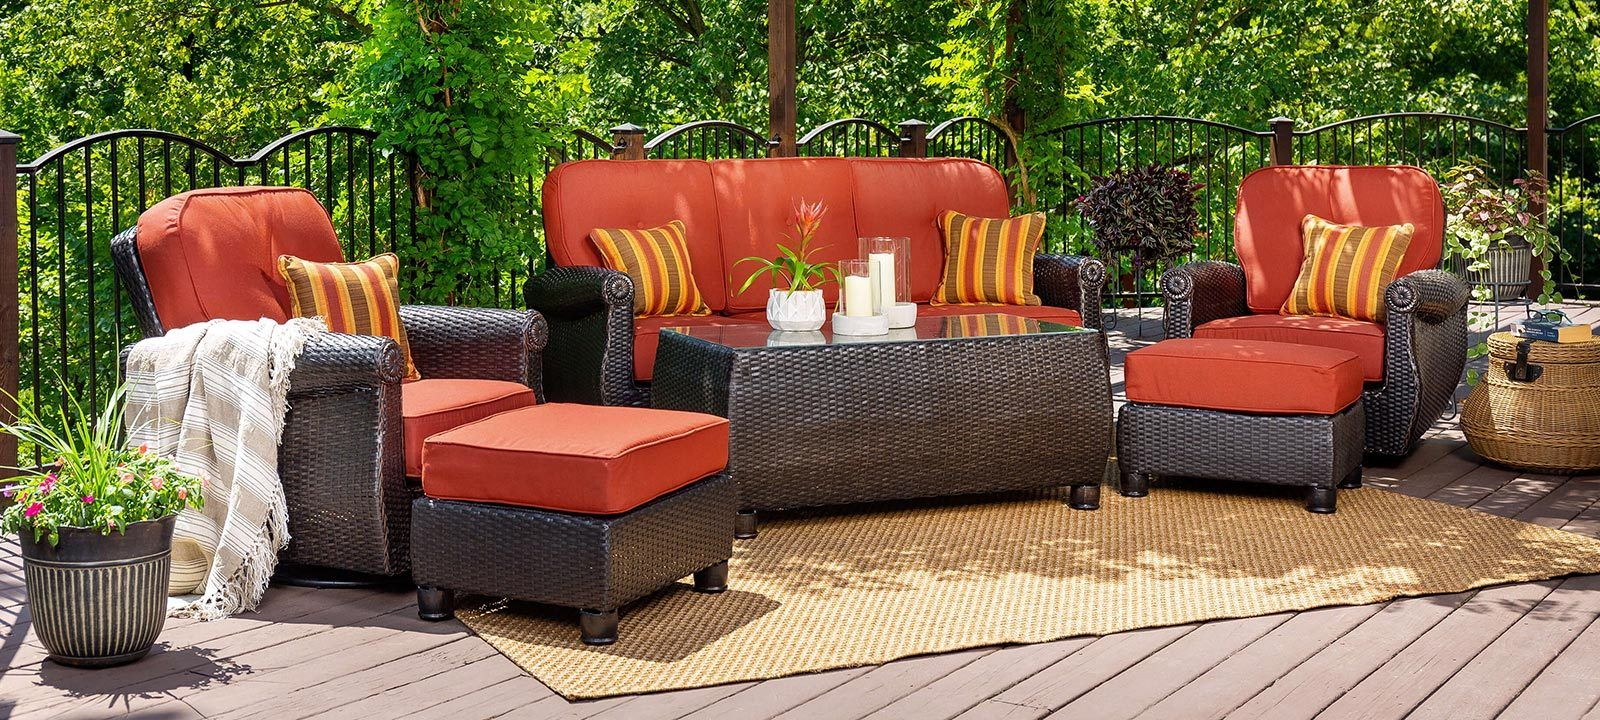 Breckenridge 6 Piece Patio Furniture Seating Set Two Swivel Rockers Sofa Coffee Table And Two Ottomans Brick Red In 2020 Black Patio Furniture Resin Wicker Patio Furniture Wicker Patio Furniture Sets